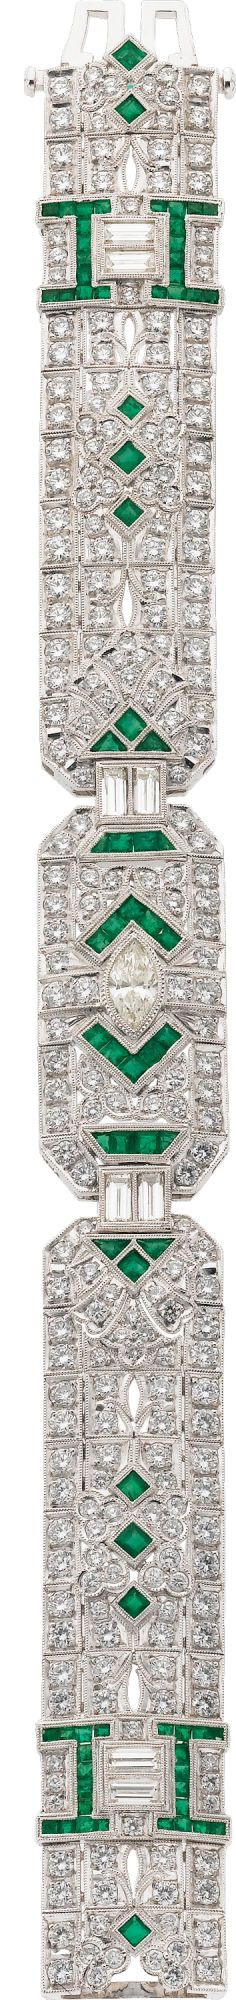 Diamond, Emerald & White Gold Bracelet. The bracelet features a marquise-shaped diamond, enhanced by full and baguette-cut diamonds, accented by square and triangular-shaped emeralds, set in 18k white gold. Total diamond weight is approximately 8.50 carats. Total emerald weight is approximately 2.00 carats.